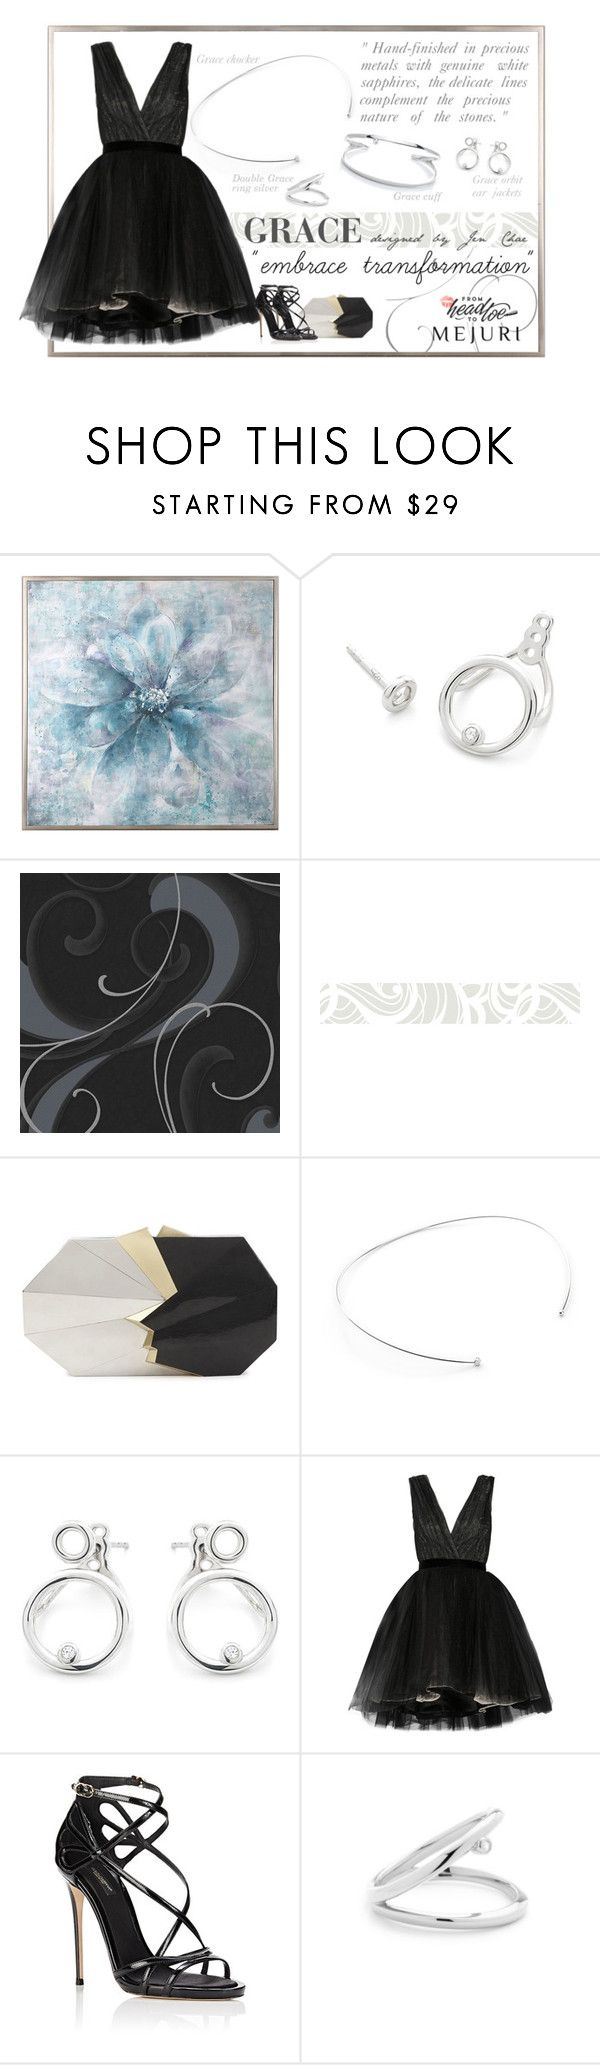 """""""Grace: Jen Chae x Mejuri - Contest Entry"""" by blueeyed-dreamer ❤ liked on Polyvore featuring Uttermost, Huddleson, Jill Haber, Alice + Olivia, Dolce&Gabbana, Silver, jewelry, grace, polyvorecontest and jenchaexmejuri"""